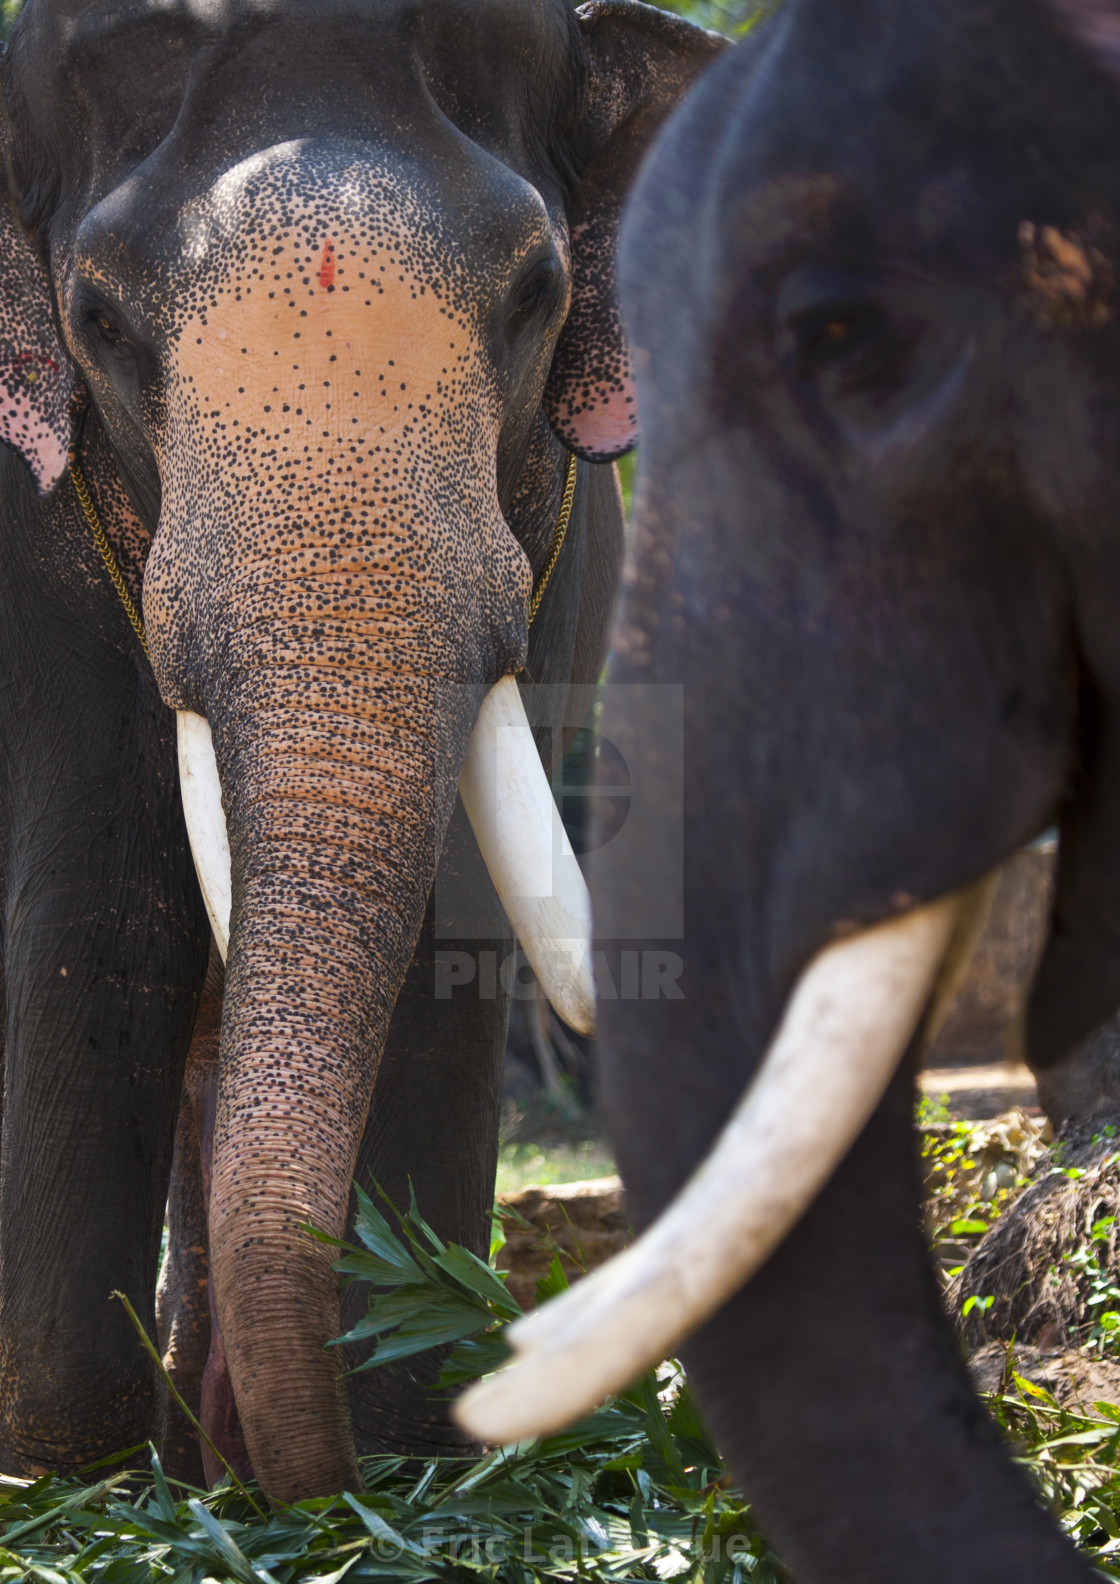 """Asian Elephants With Tusks Eating Grass, Kochi, India"" stock image"